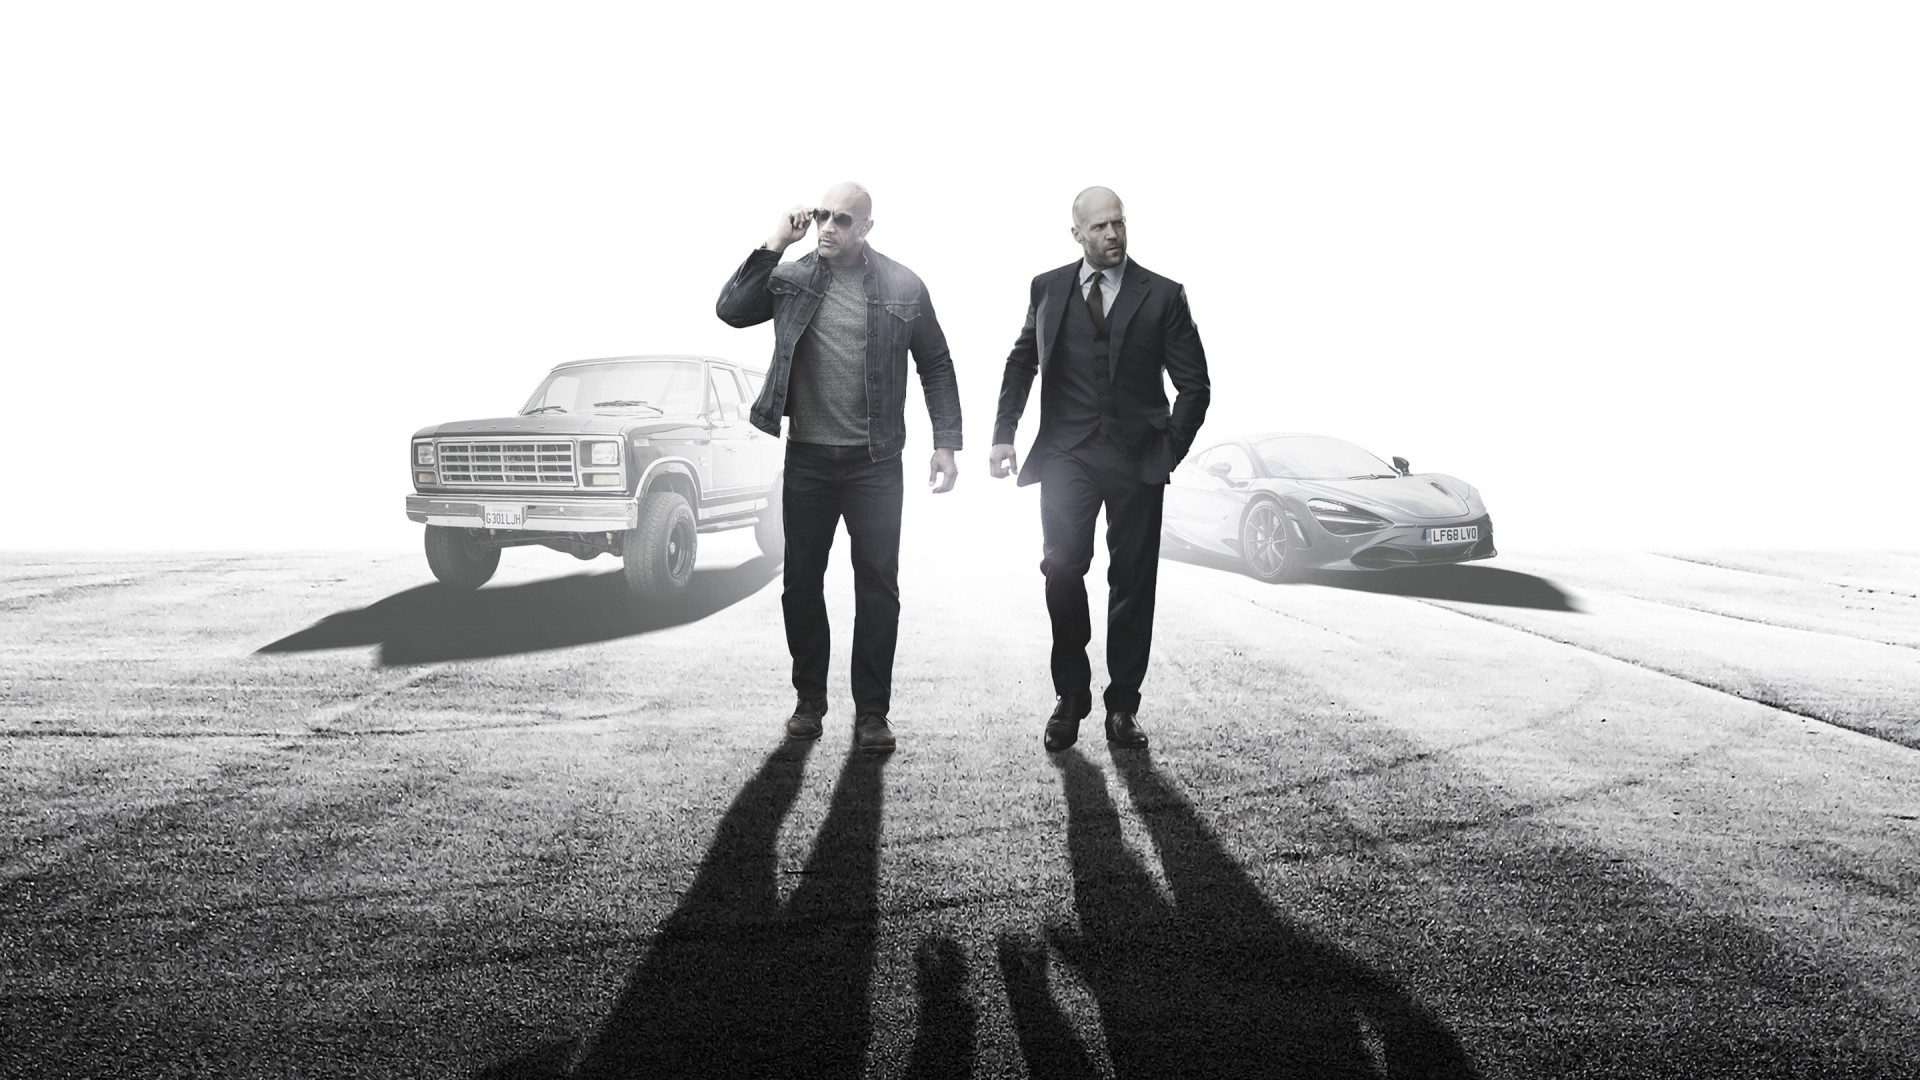 Download wallpaper: Fast and Furious Presents: Hobbs and